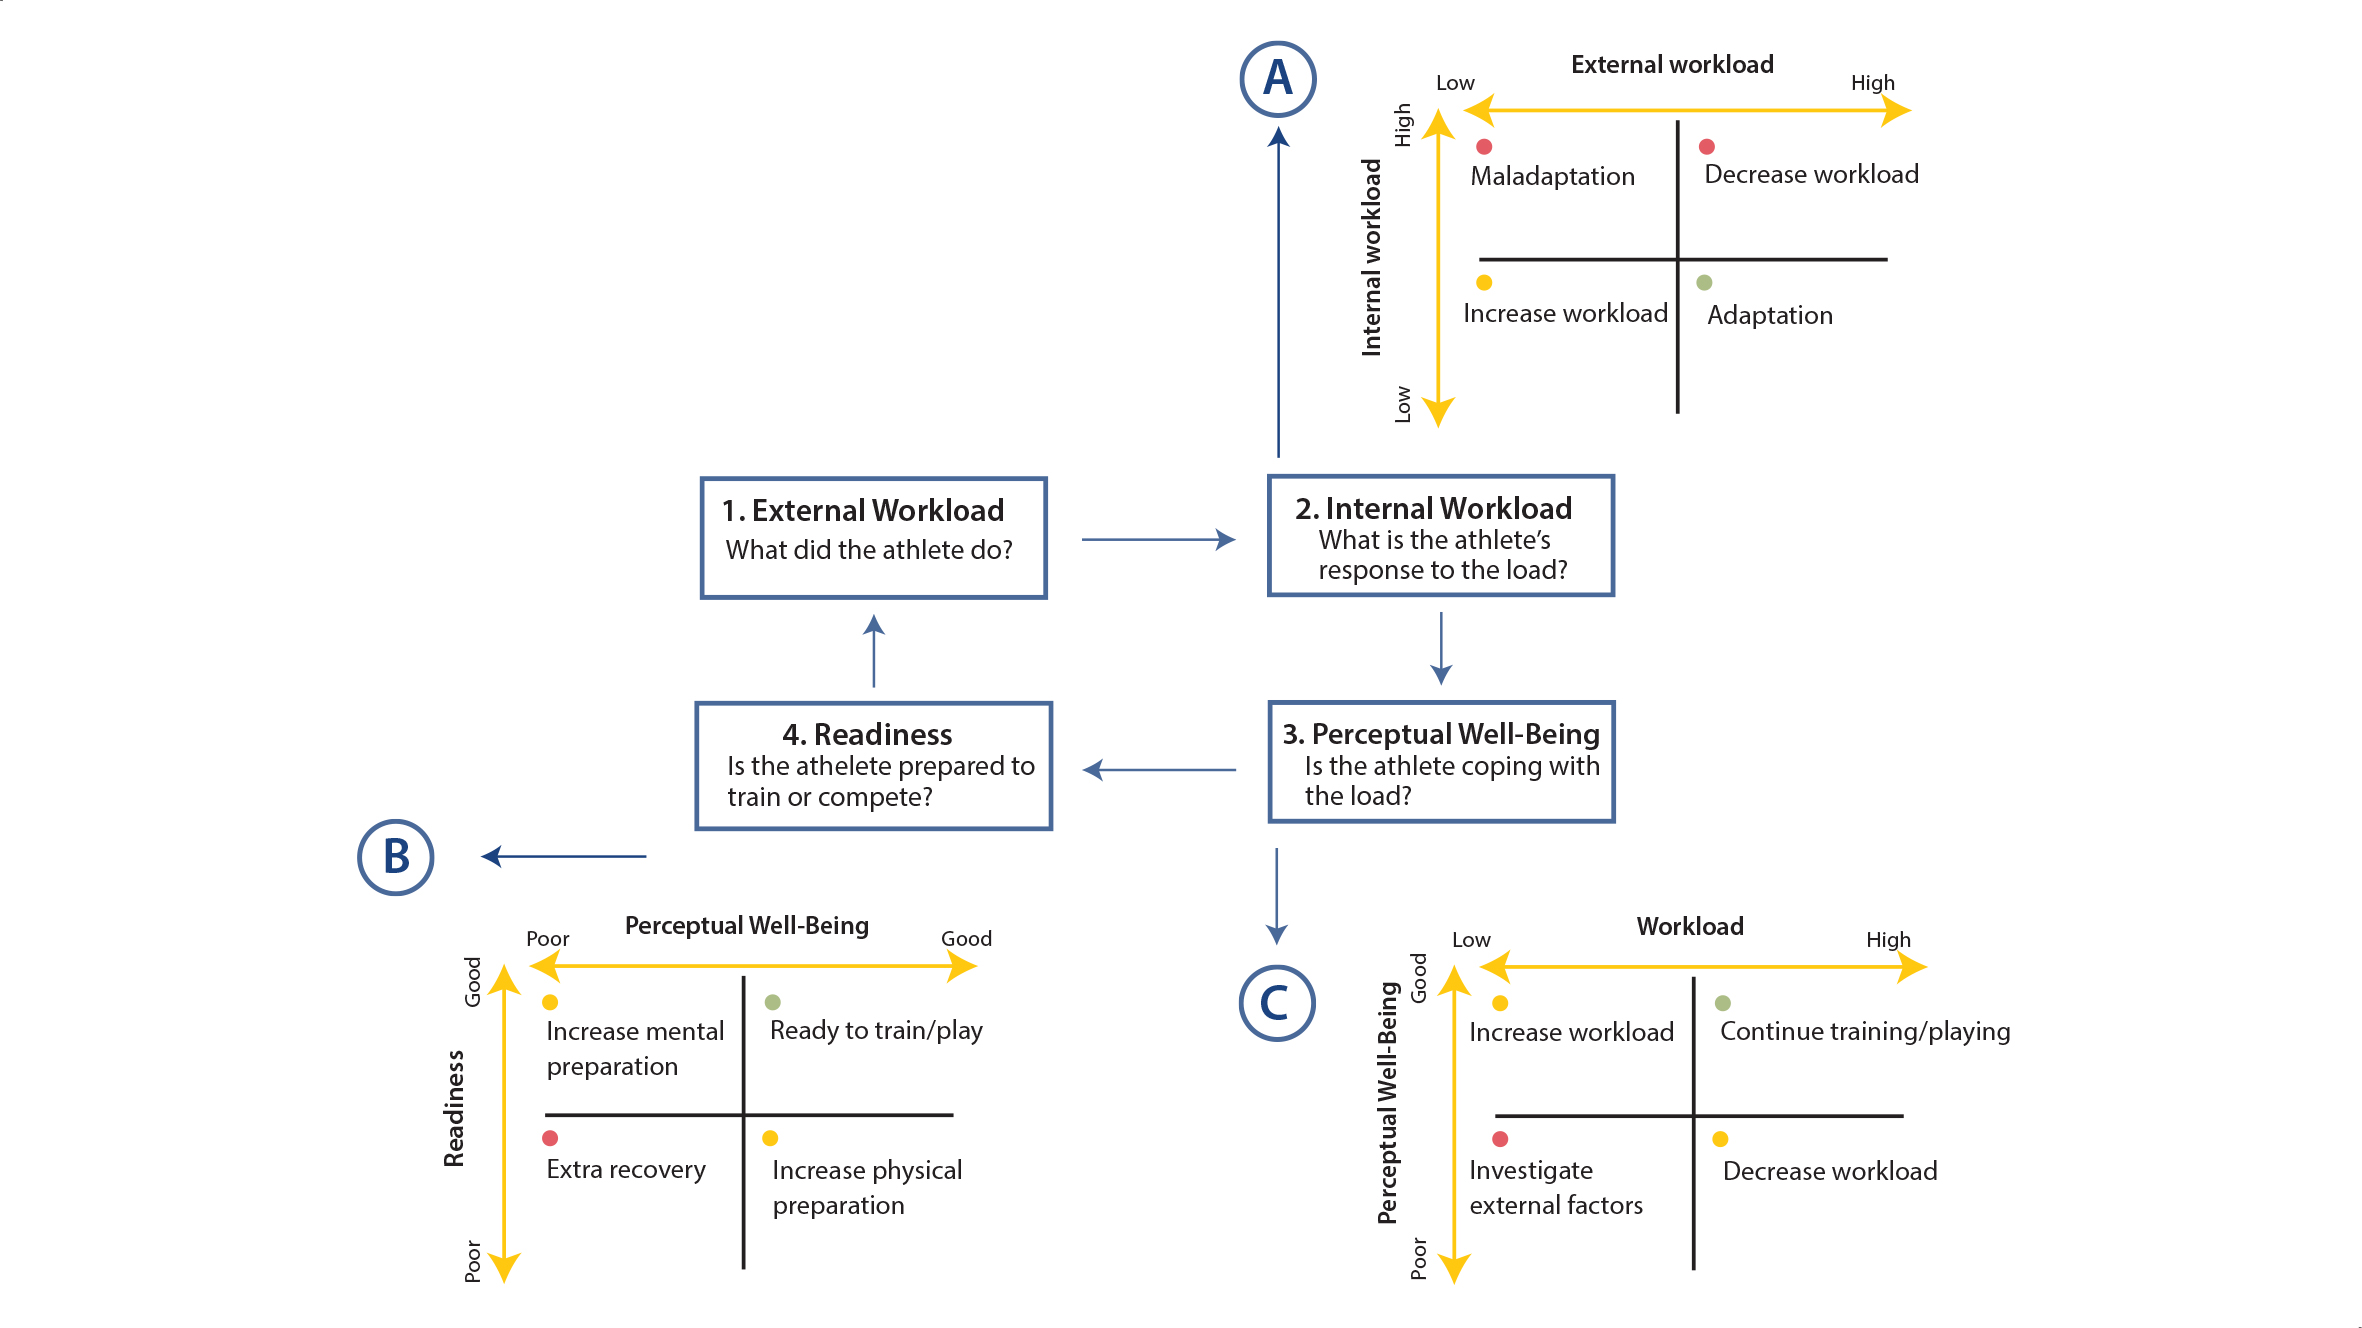 Figure 3. The athlete monitoring cycle. Model proposed by Gabbett et al. (2017).